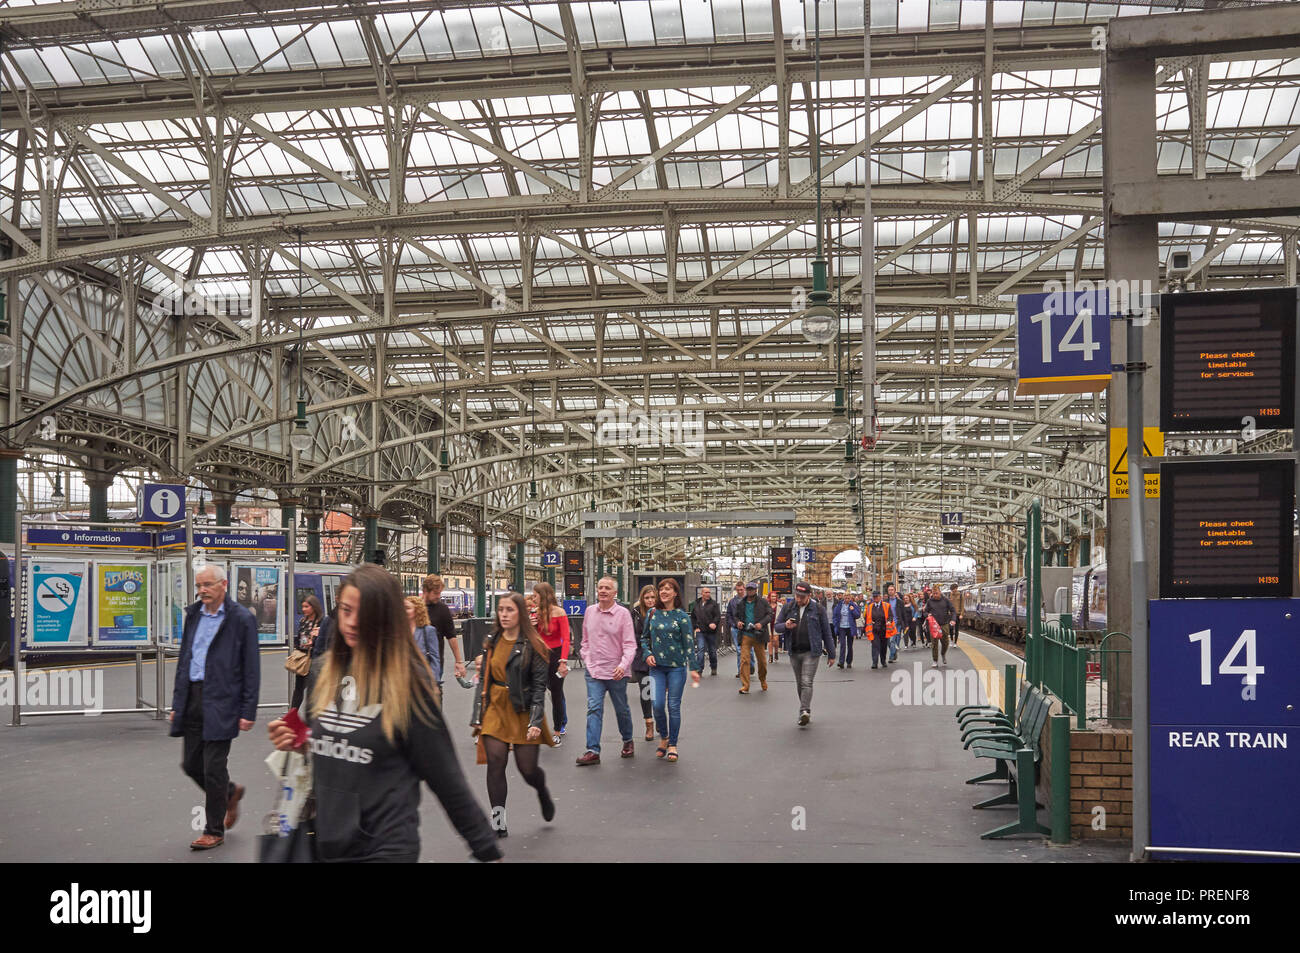 Passengers arriving at Glasgow Central Station, Central Scotland, UK - Stock Image